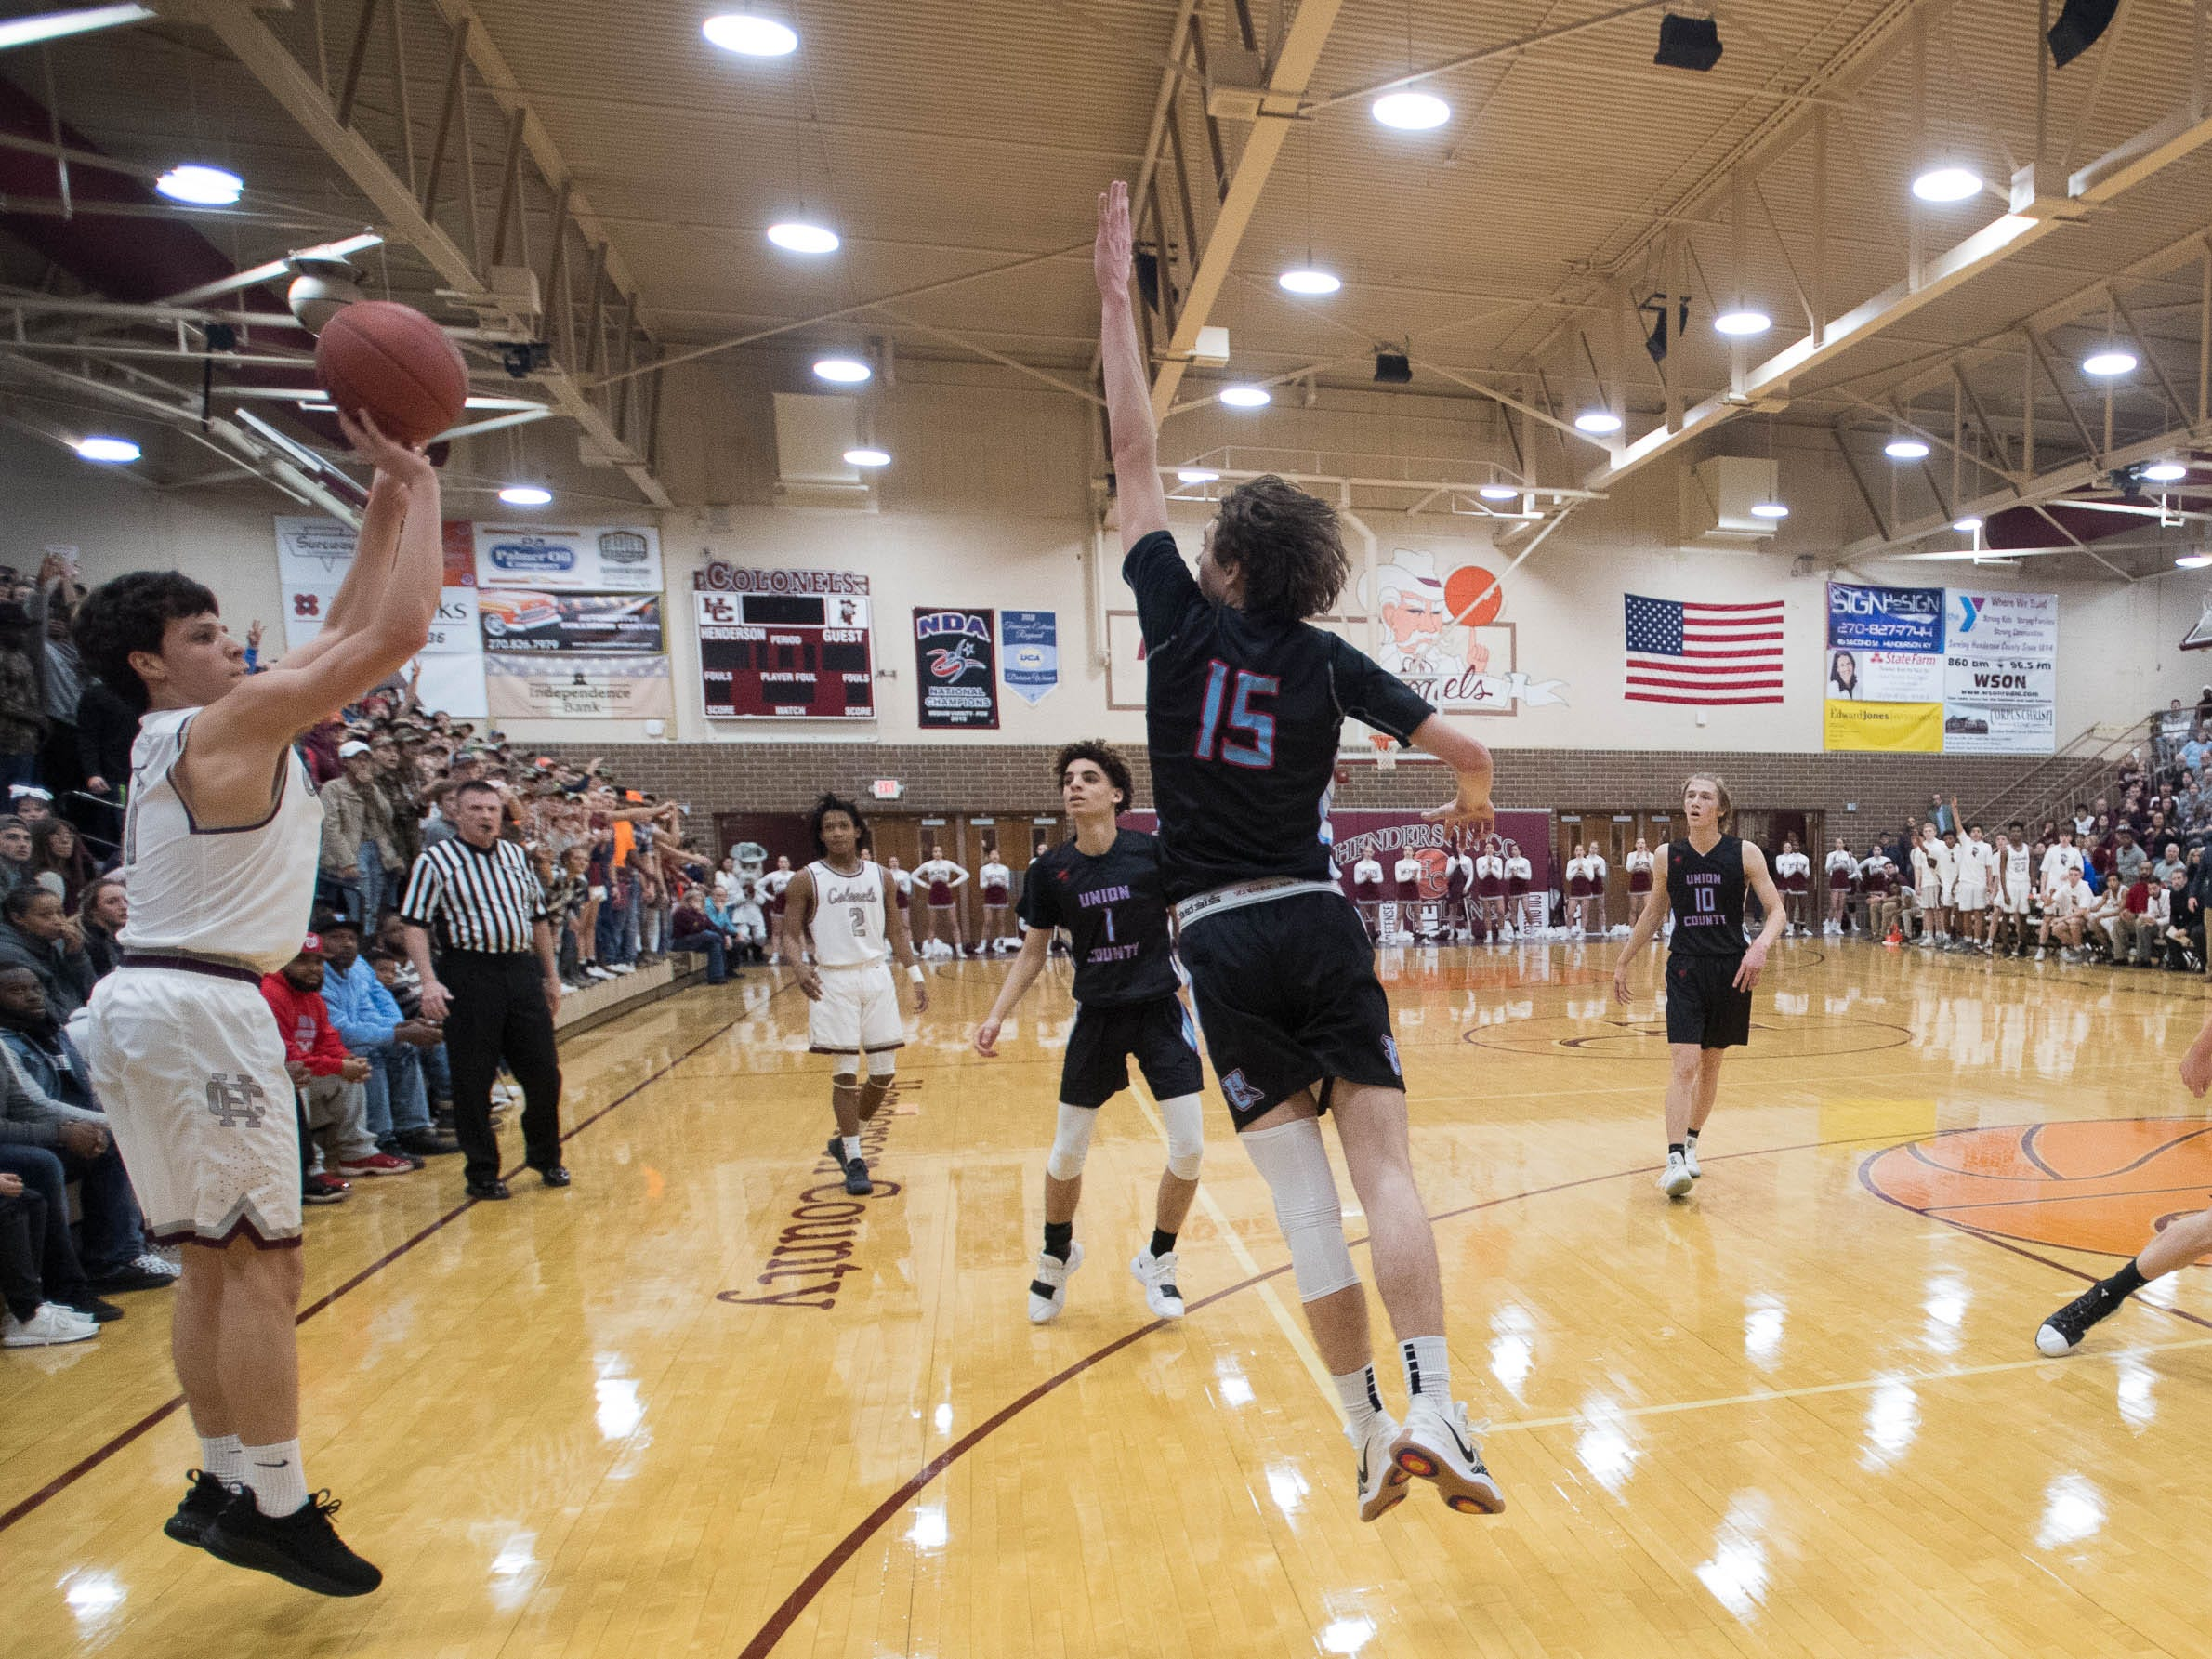 Henderson's Corey Stewart (1) takes a three point shoot as district rivals Union County Braves play the Henderson County Colonels at Colonel Gym in Henderson Tuesday, January 29, 2019.